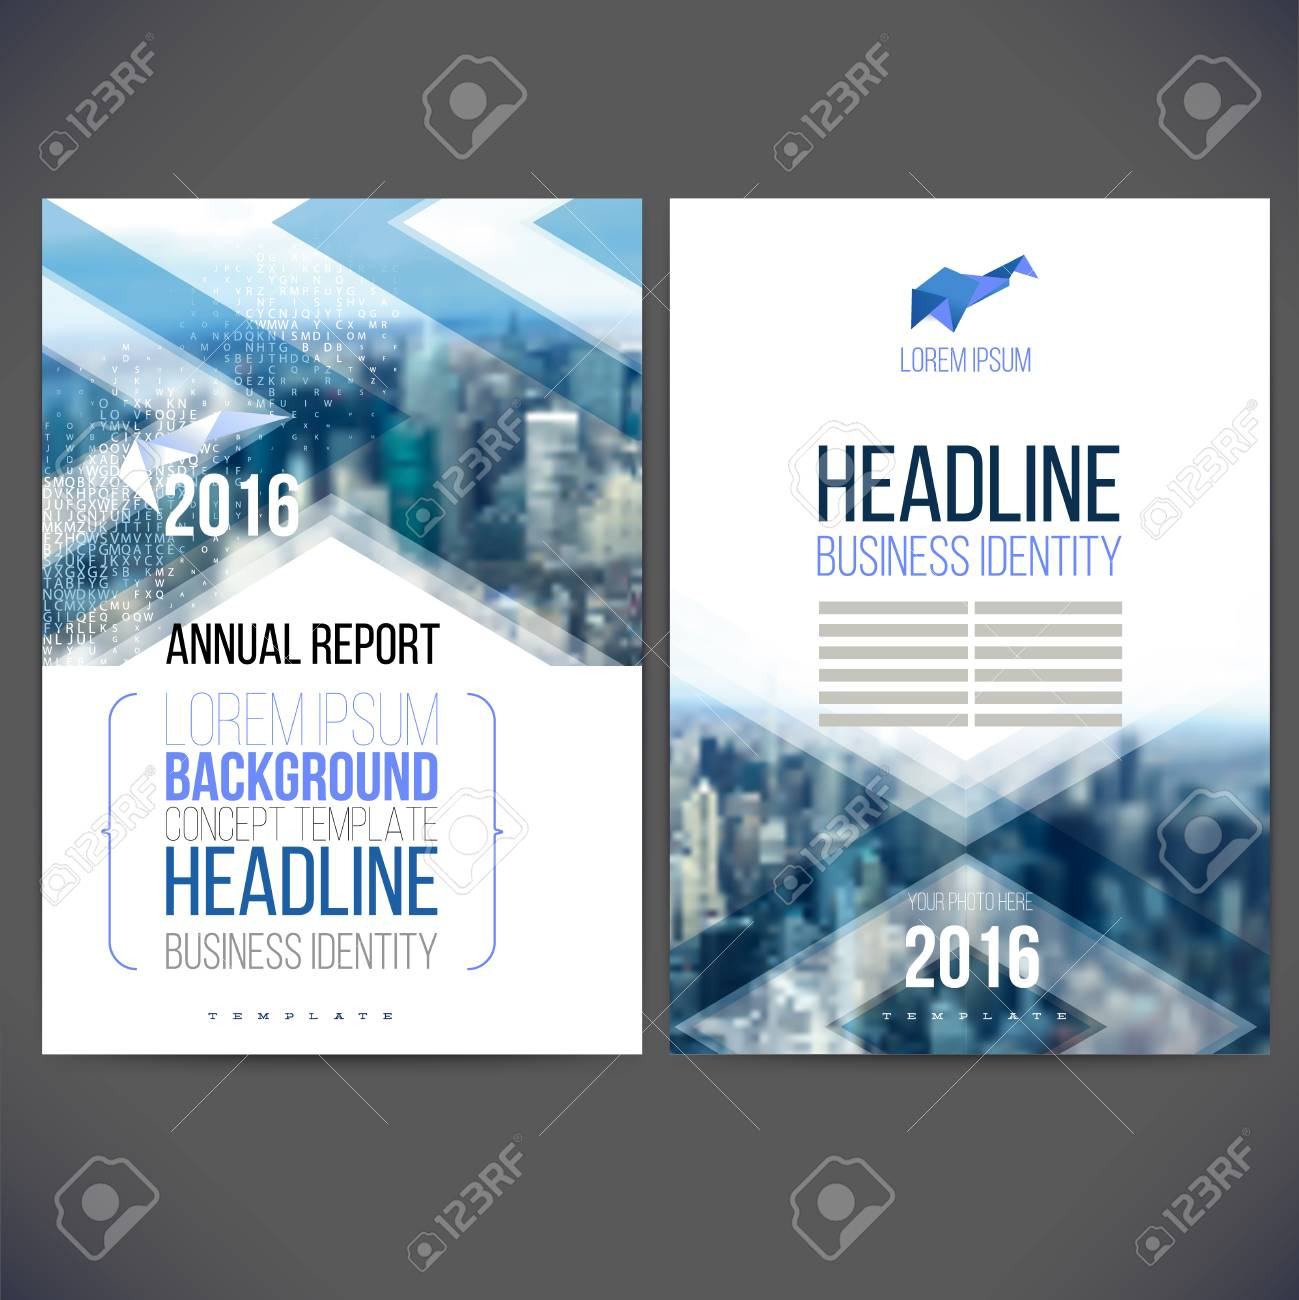 Template Design Annual Report Layout With Colorful Cityscape - Annual report design templates 2016